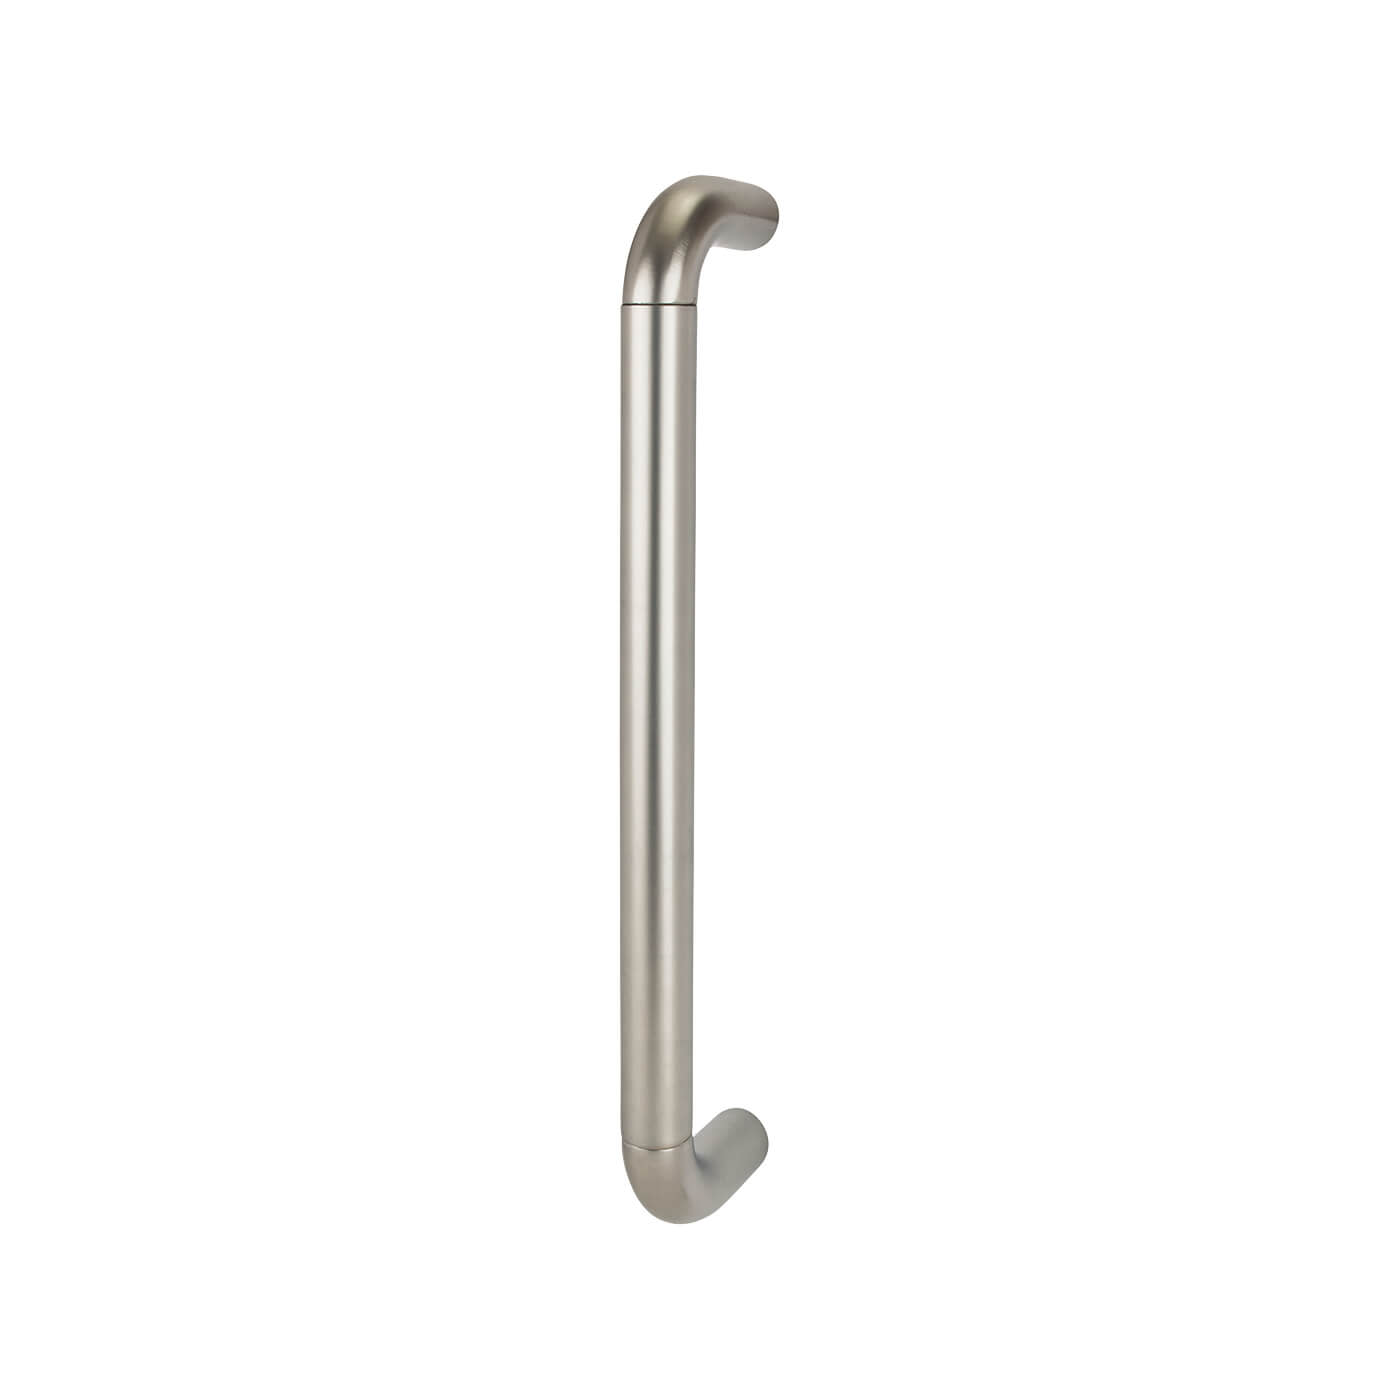 Serozzetta DDA Pull Handle - 327 x 22mm - Satin Chrome)